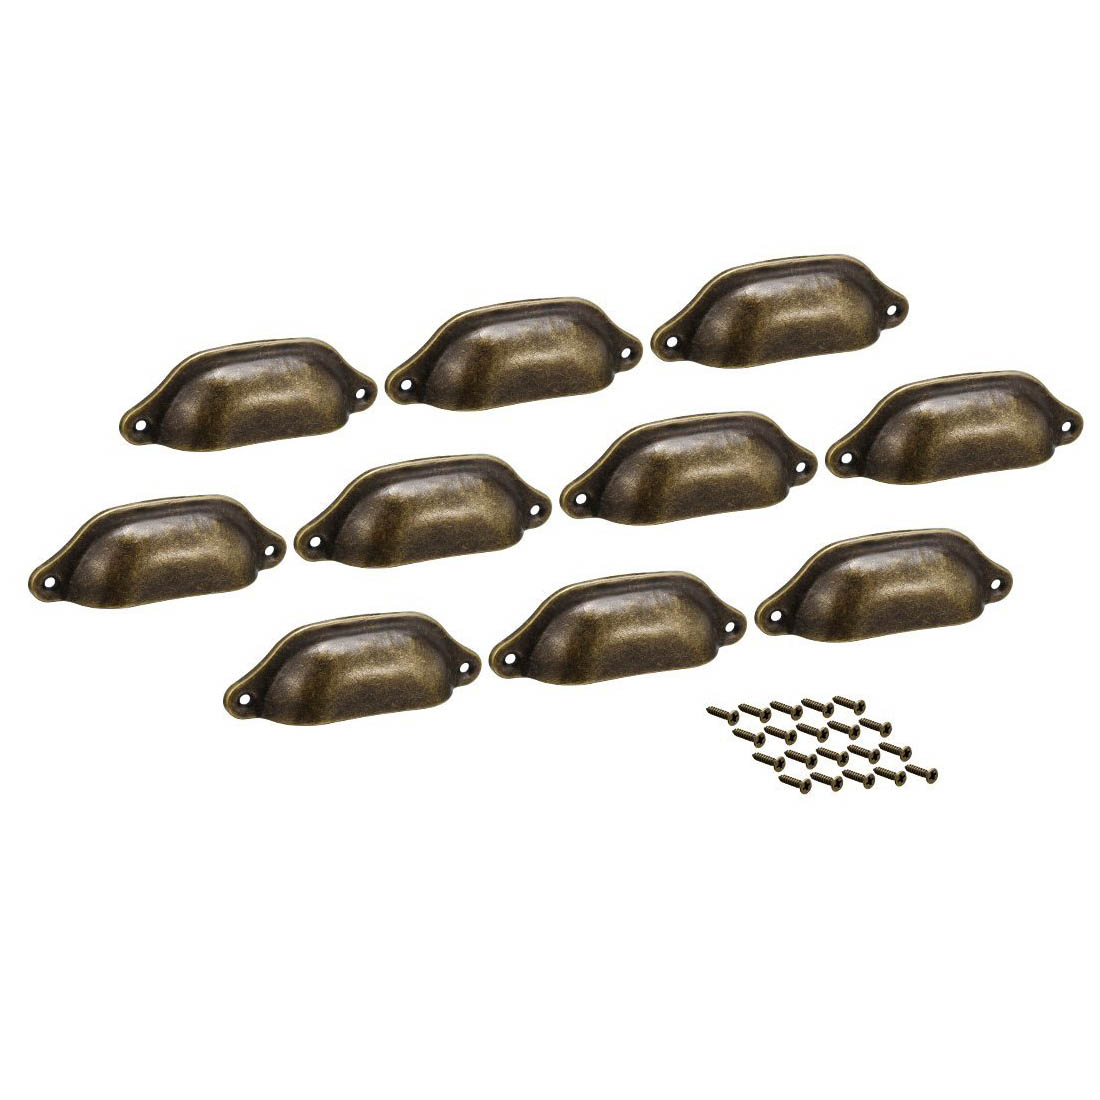 DSHA -10 Pack cup Drawer Pull Kitchen Cabinet Handles Bronze Tone, 83mm Hole Centers цена